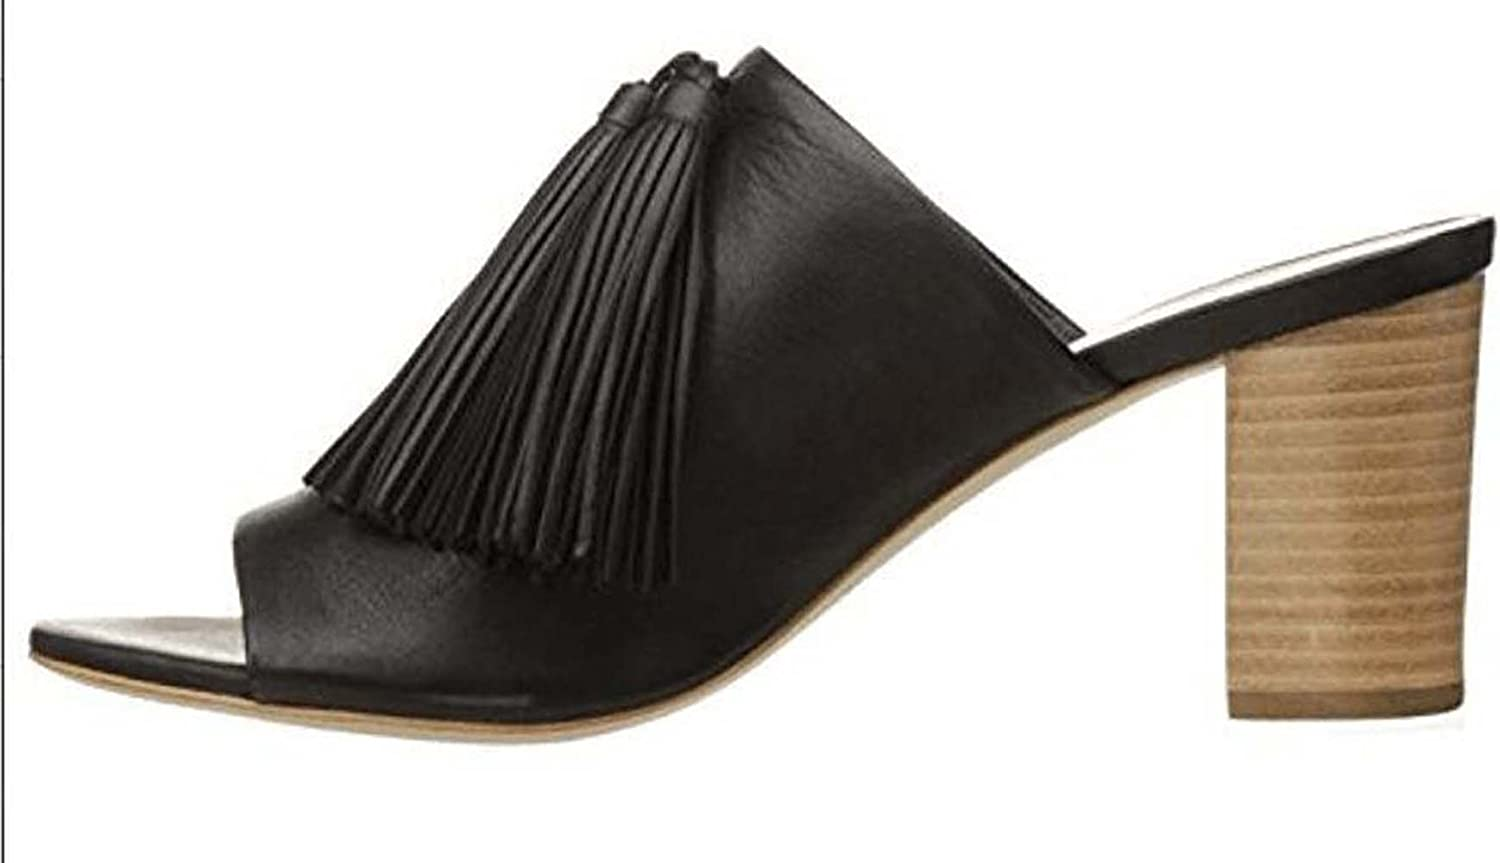 Lady Black Tassel Toe Toe High Heel Slippers European and American Comfort Thick and Cool Slippers